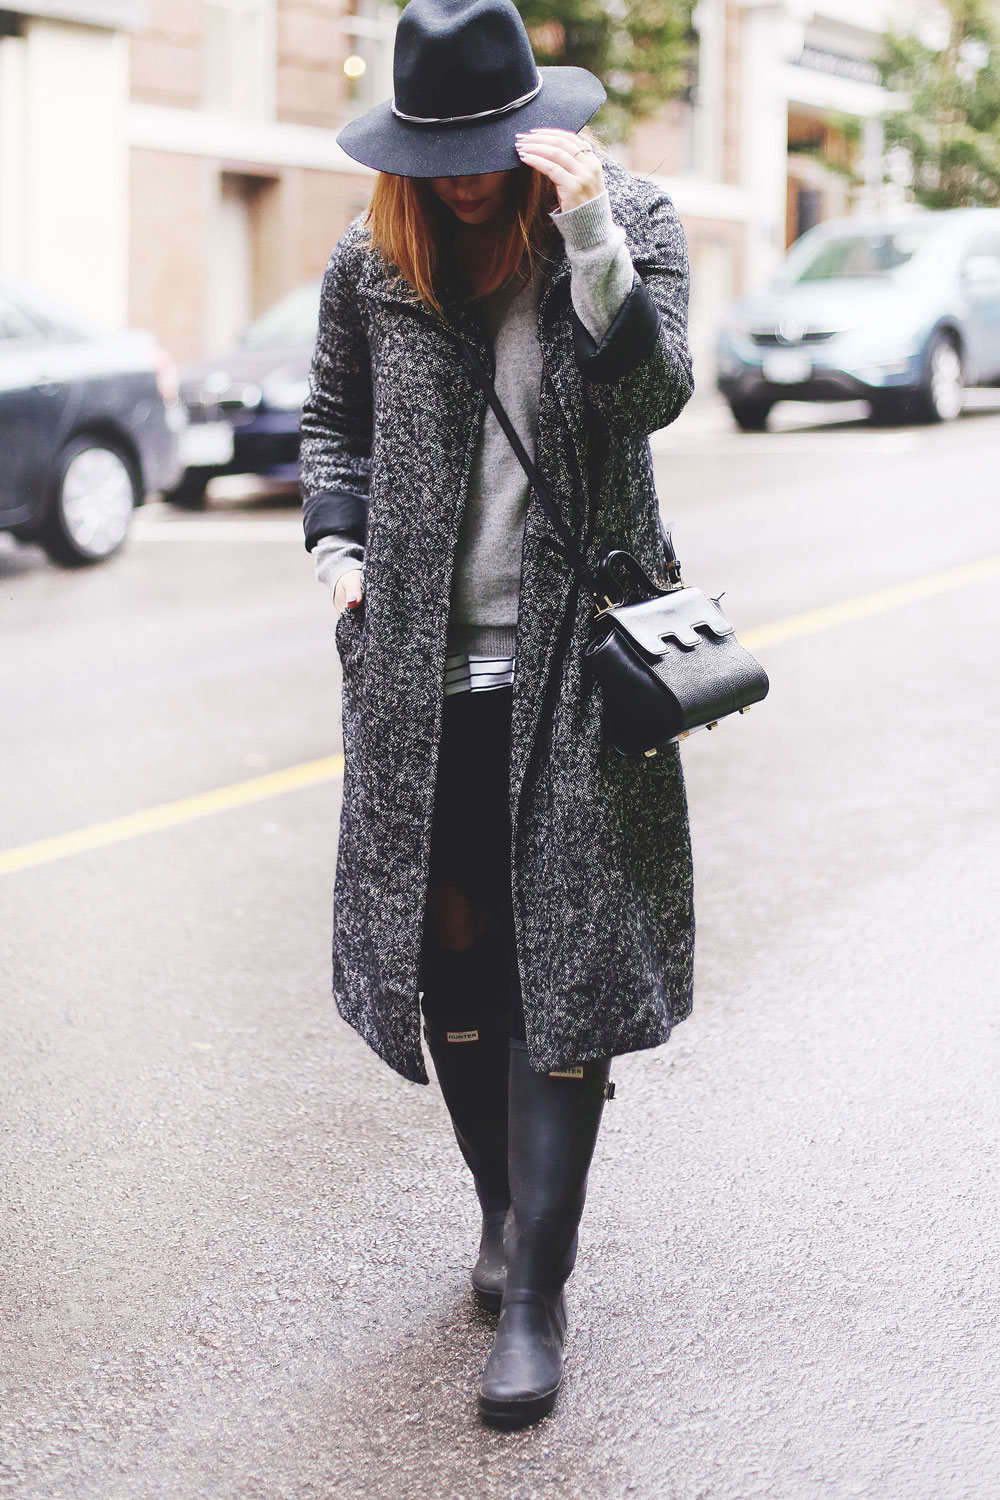 Rainy day outfit ideas for fall, featuring Aritzia Babaton wool trench coat, White and Warren cashmere sweater, striped tank top, Express black wool fedora, Mezzi Mini Cosma bag, Hunter rain boots